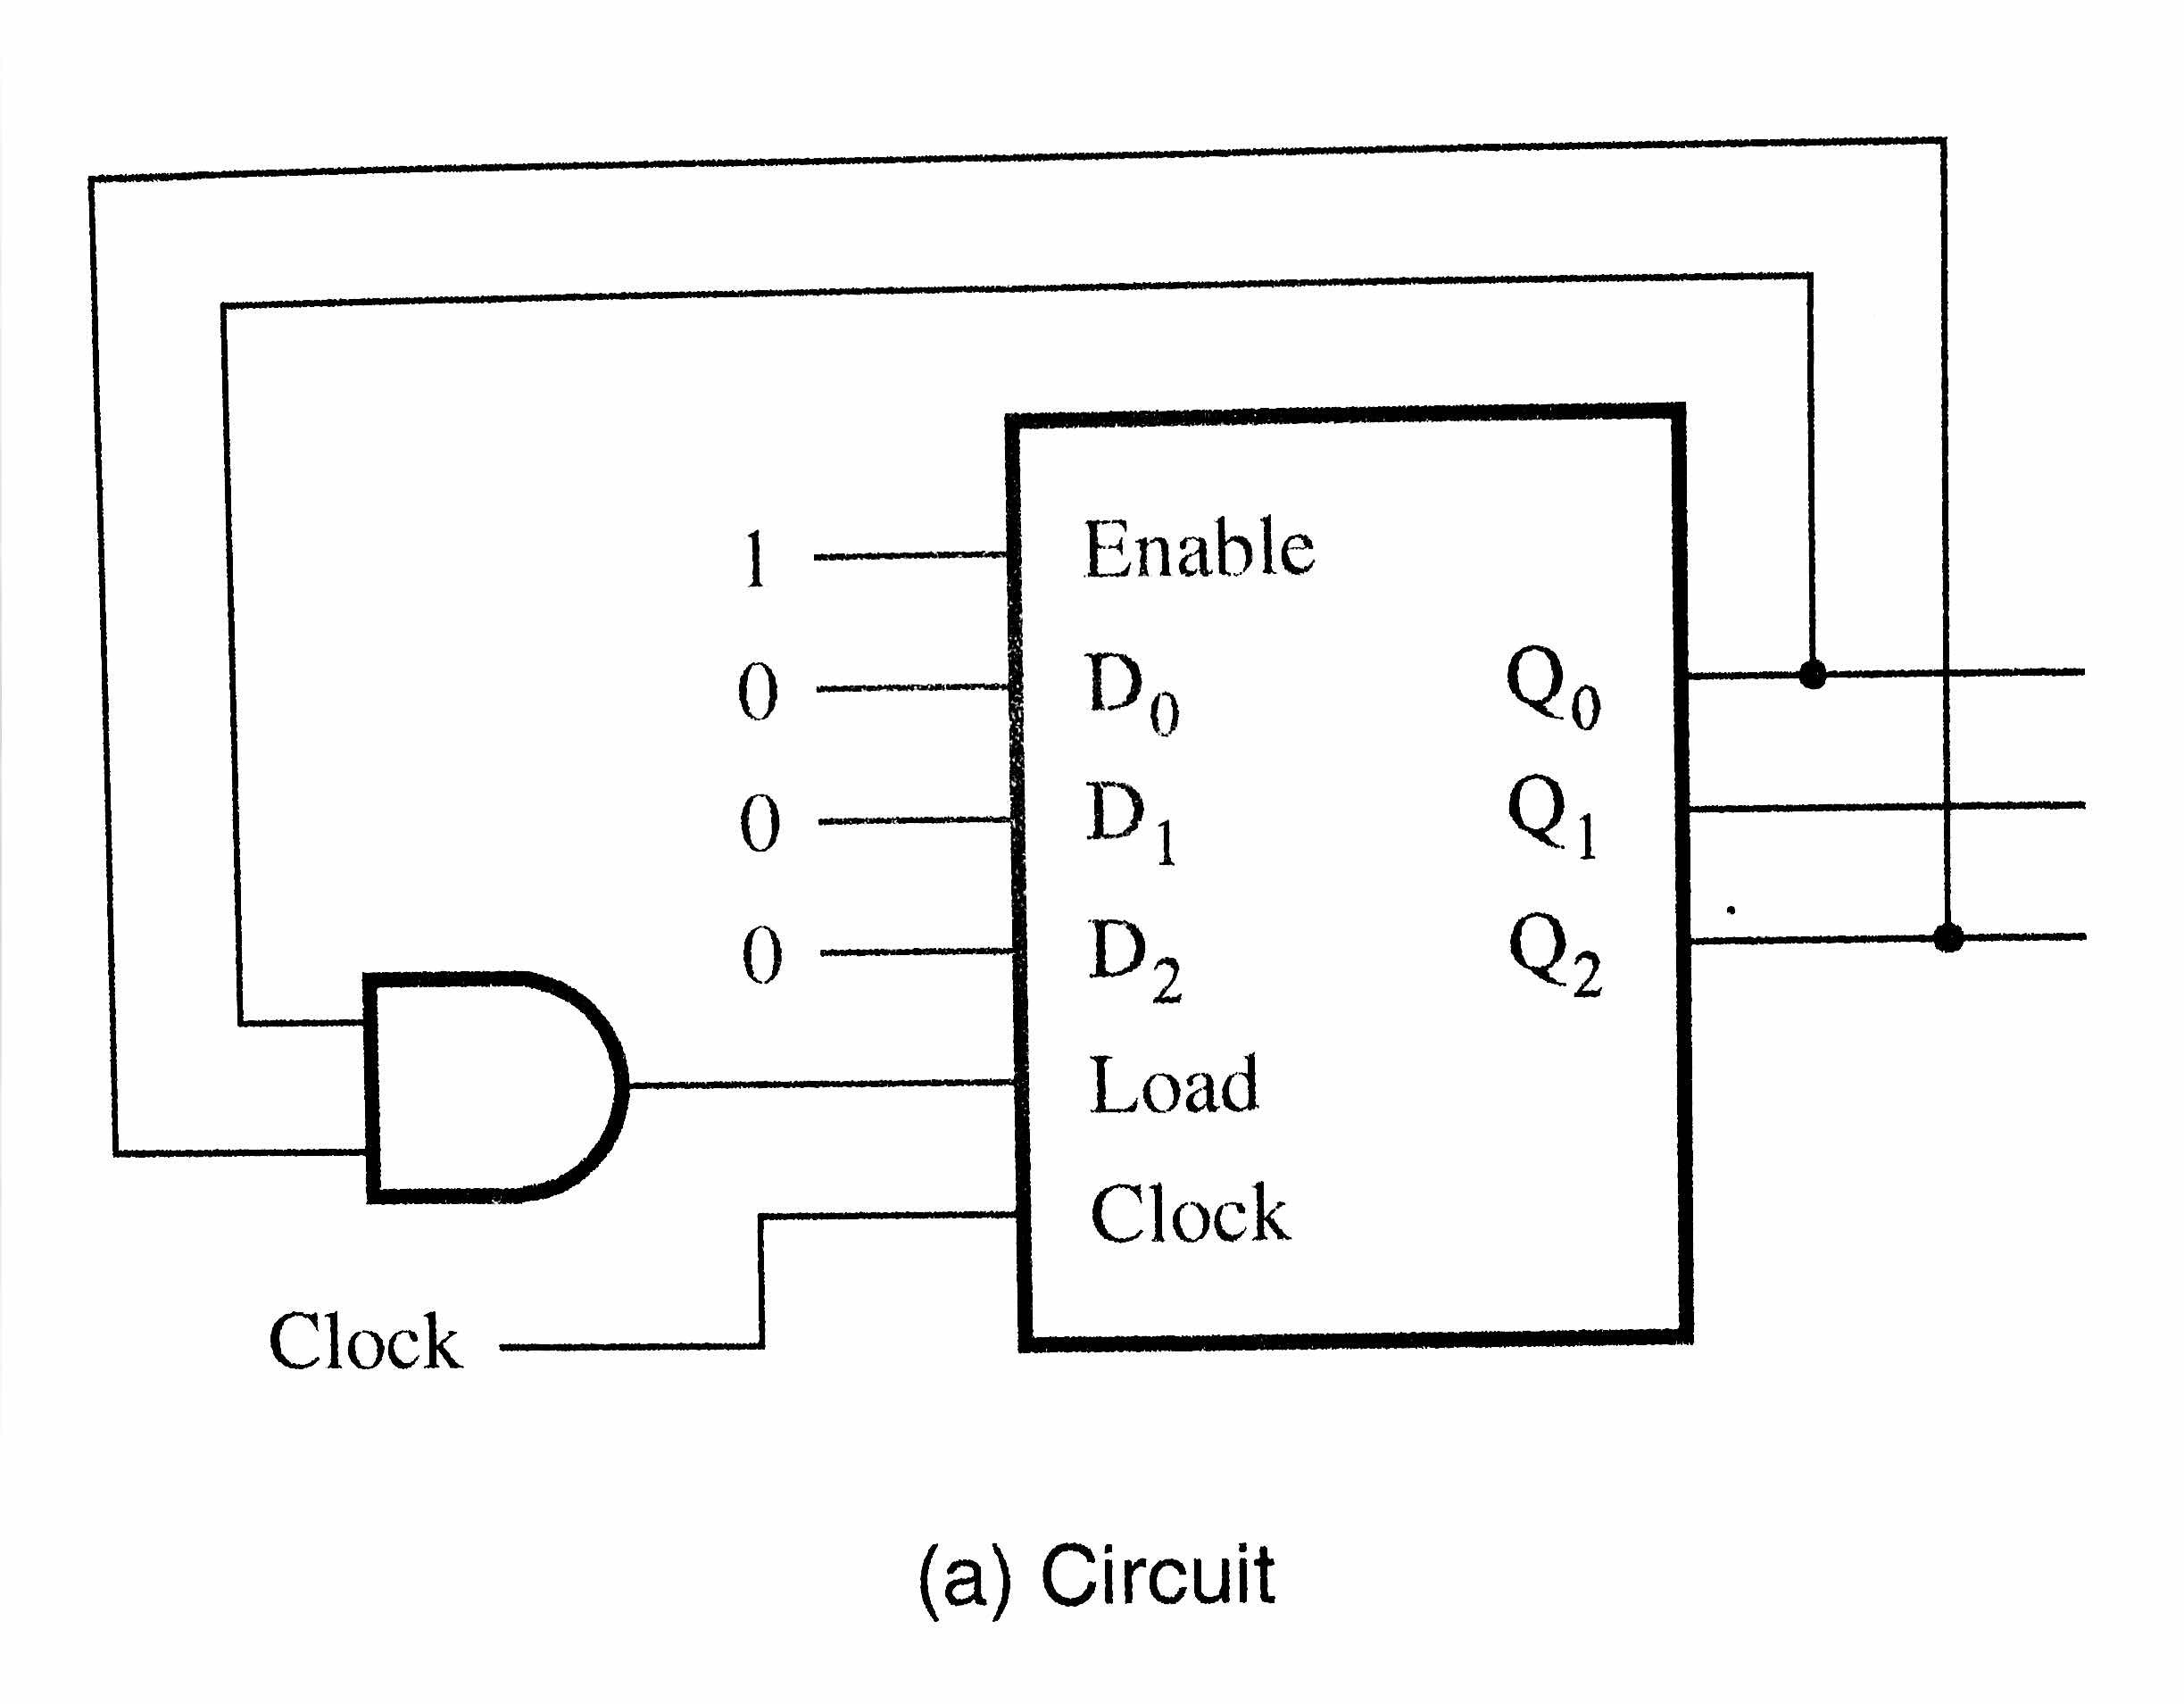 Solved Draw The Circuit For A Mod 10 Counter Also Known